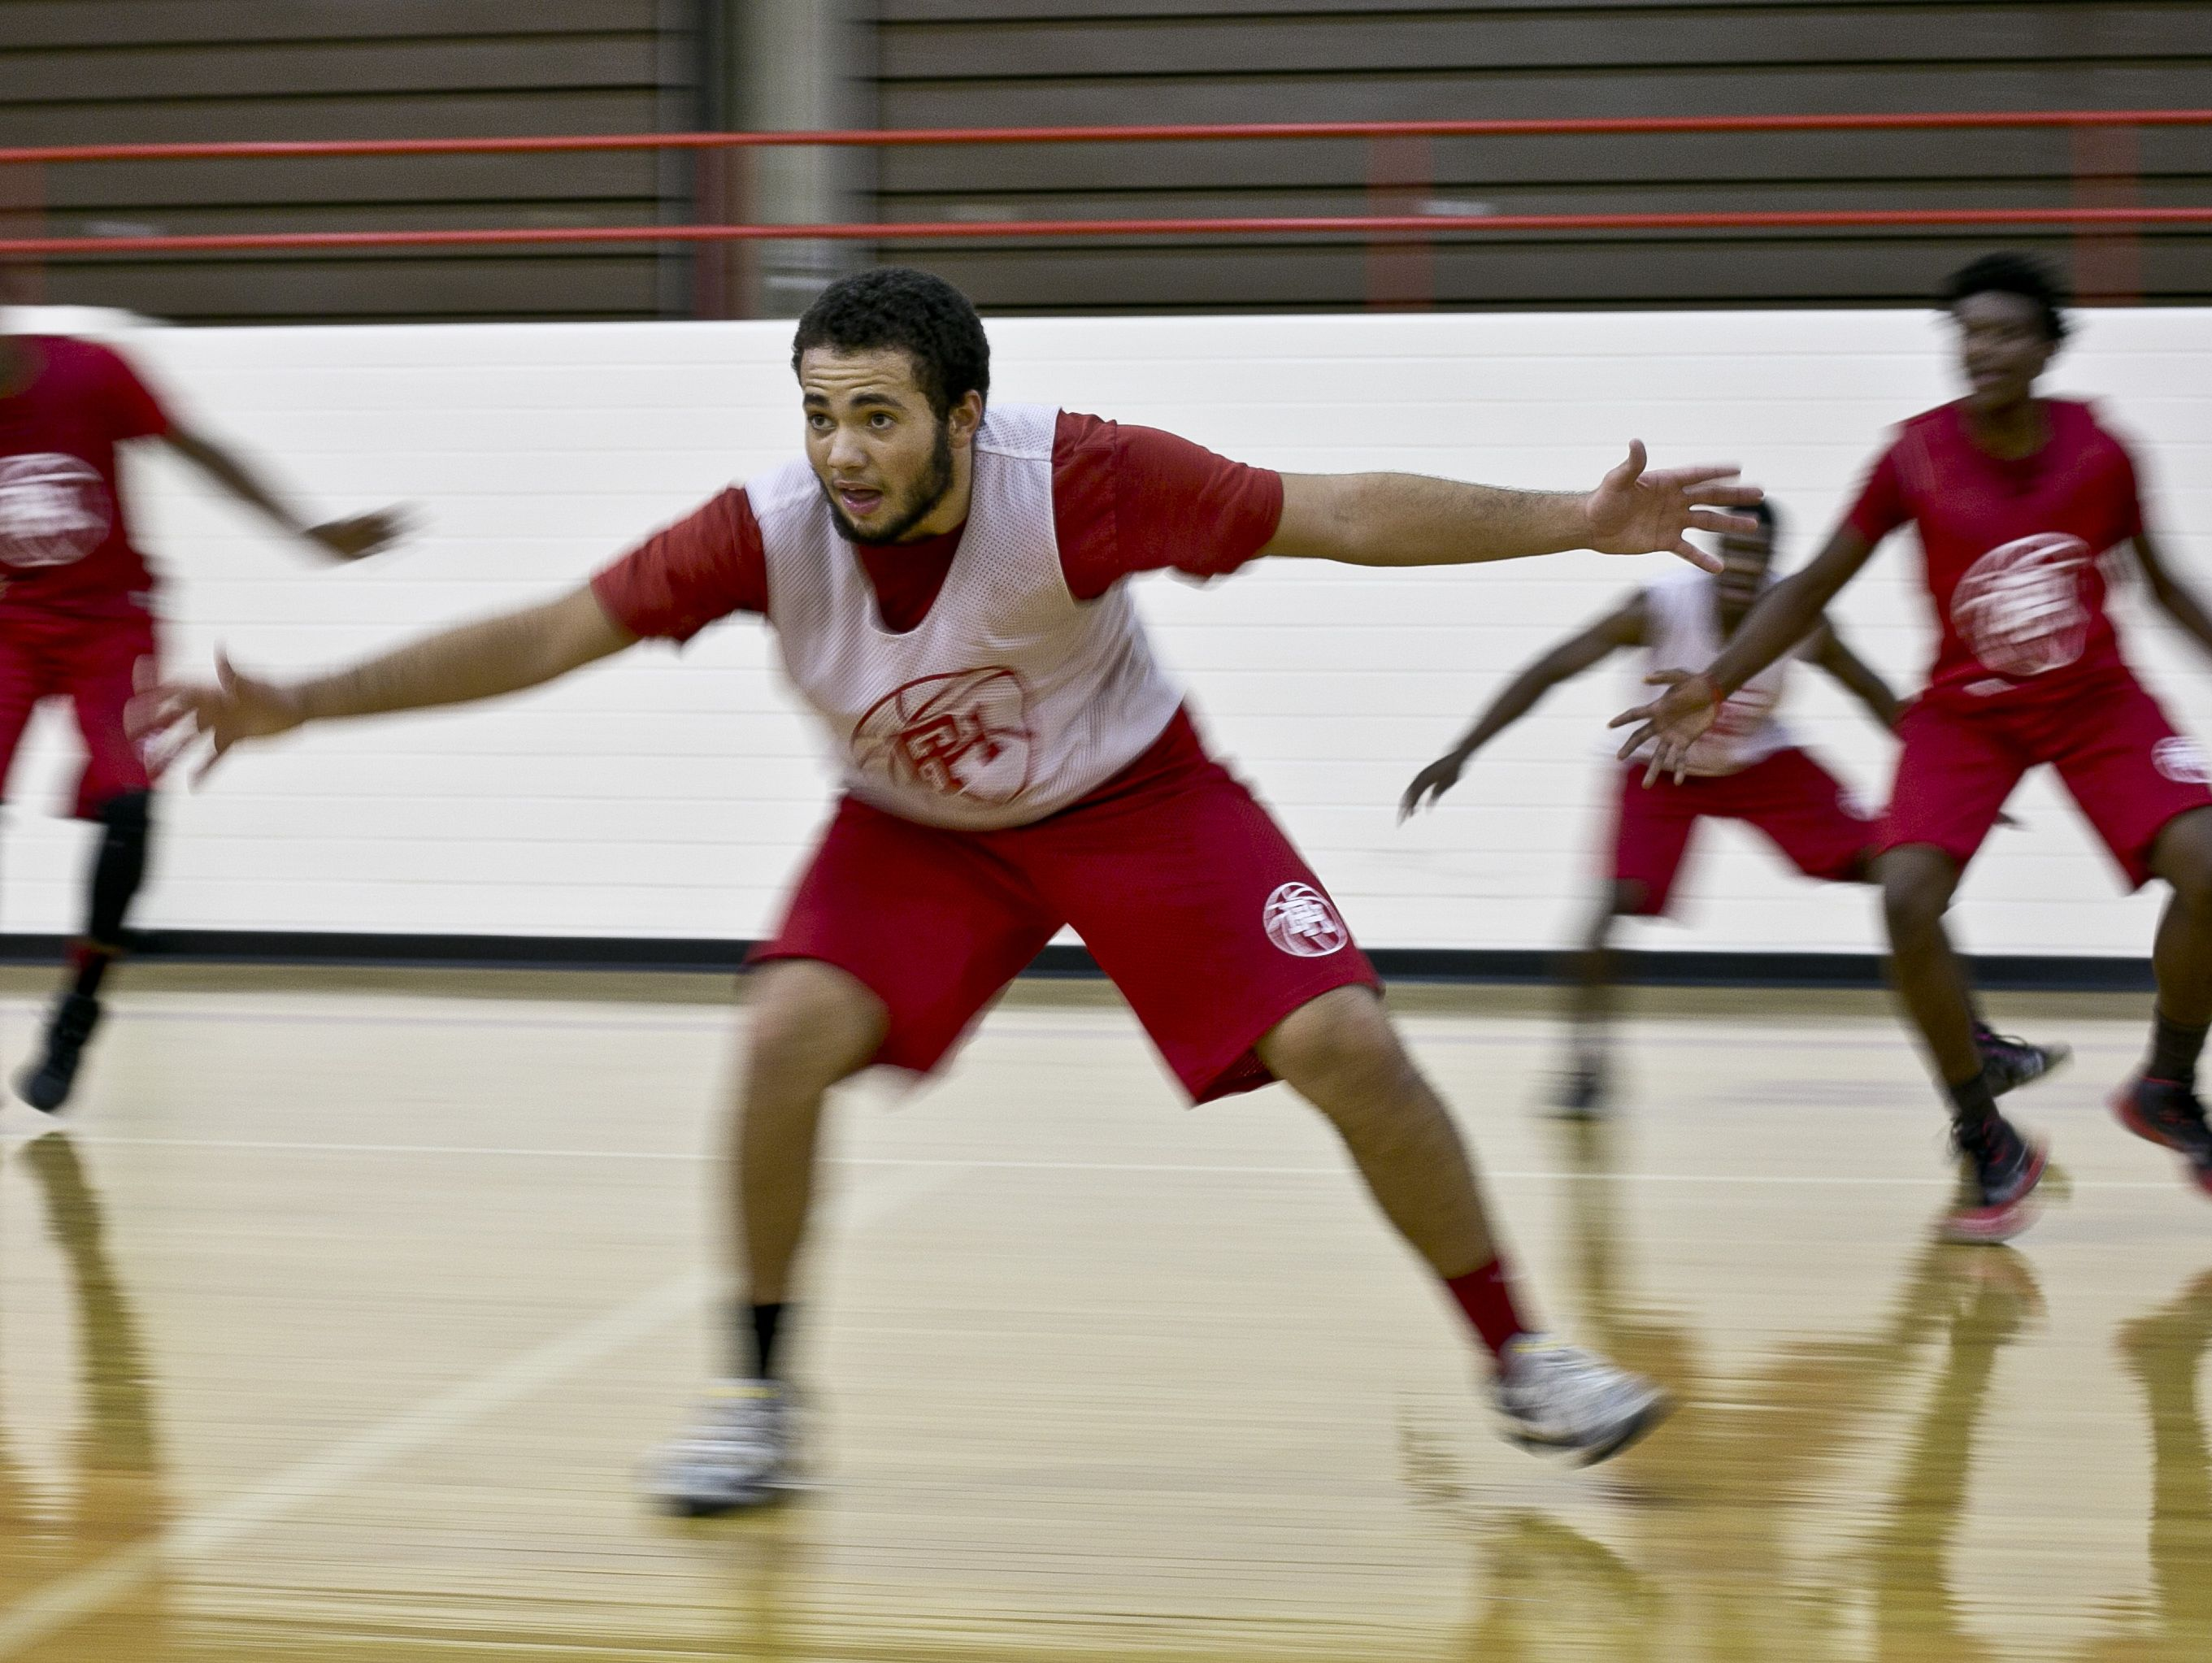 Port Huron senior Nate Rogan runs side-step drills with teammates during practice Thursday, December 3, 2015 at Port Huron High School.